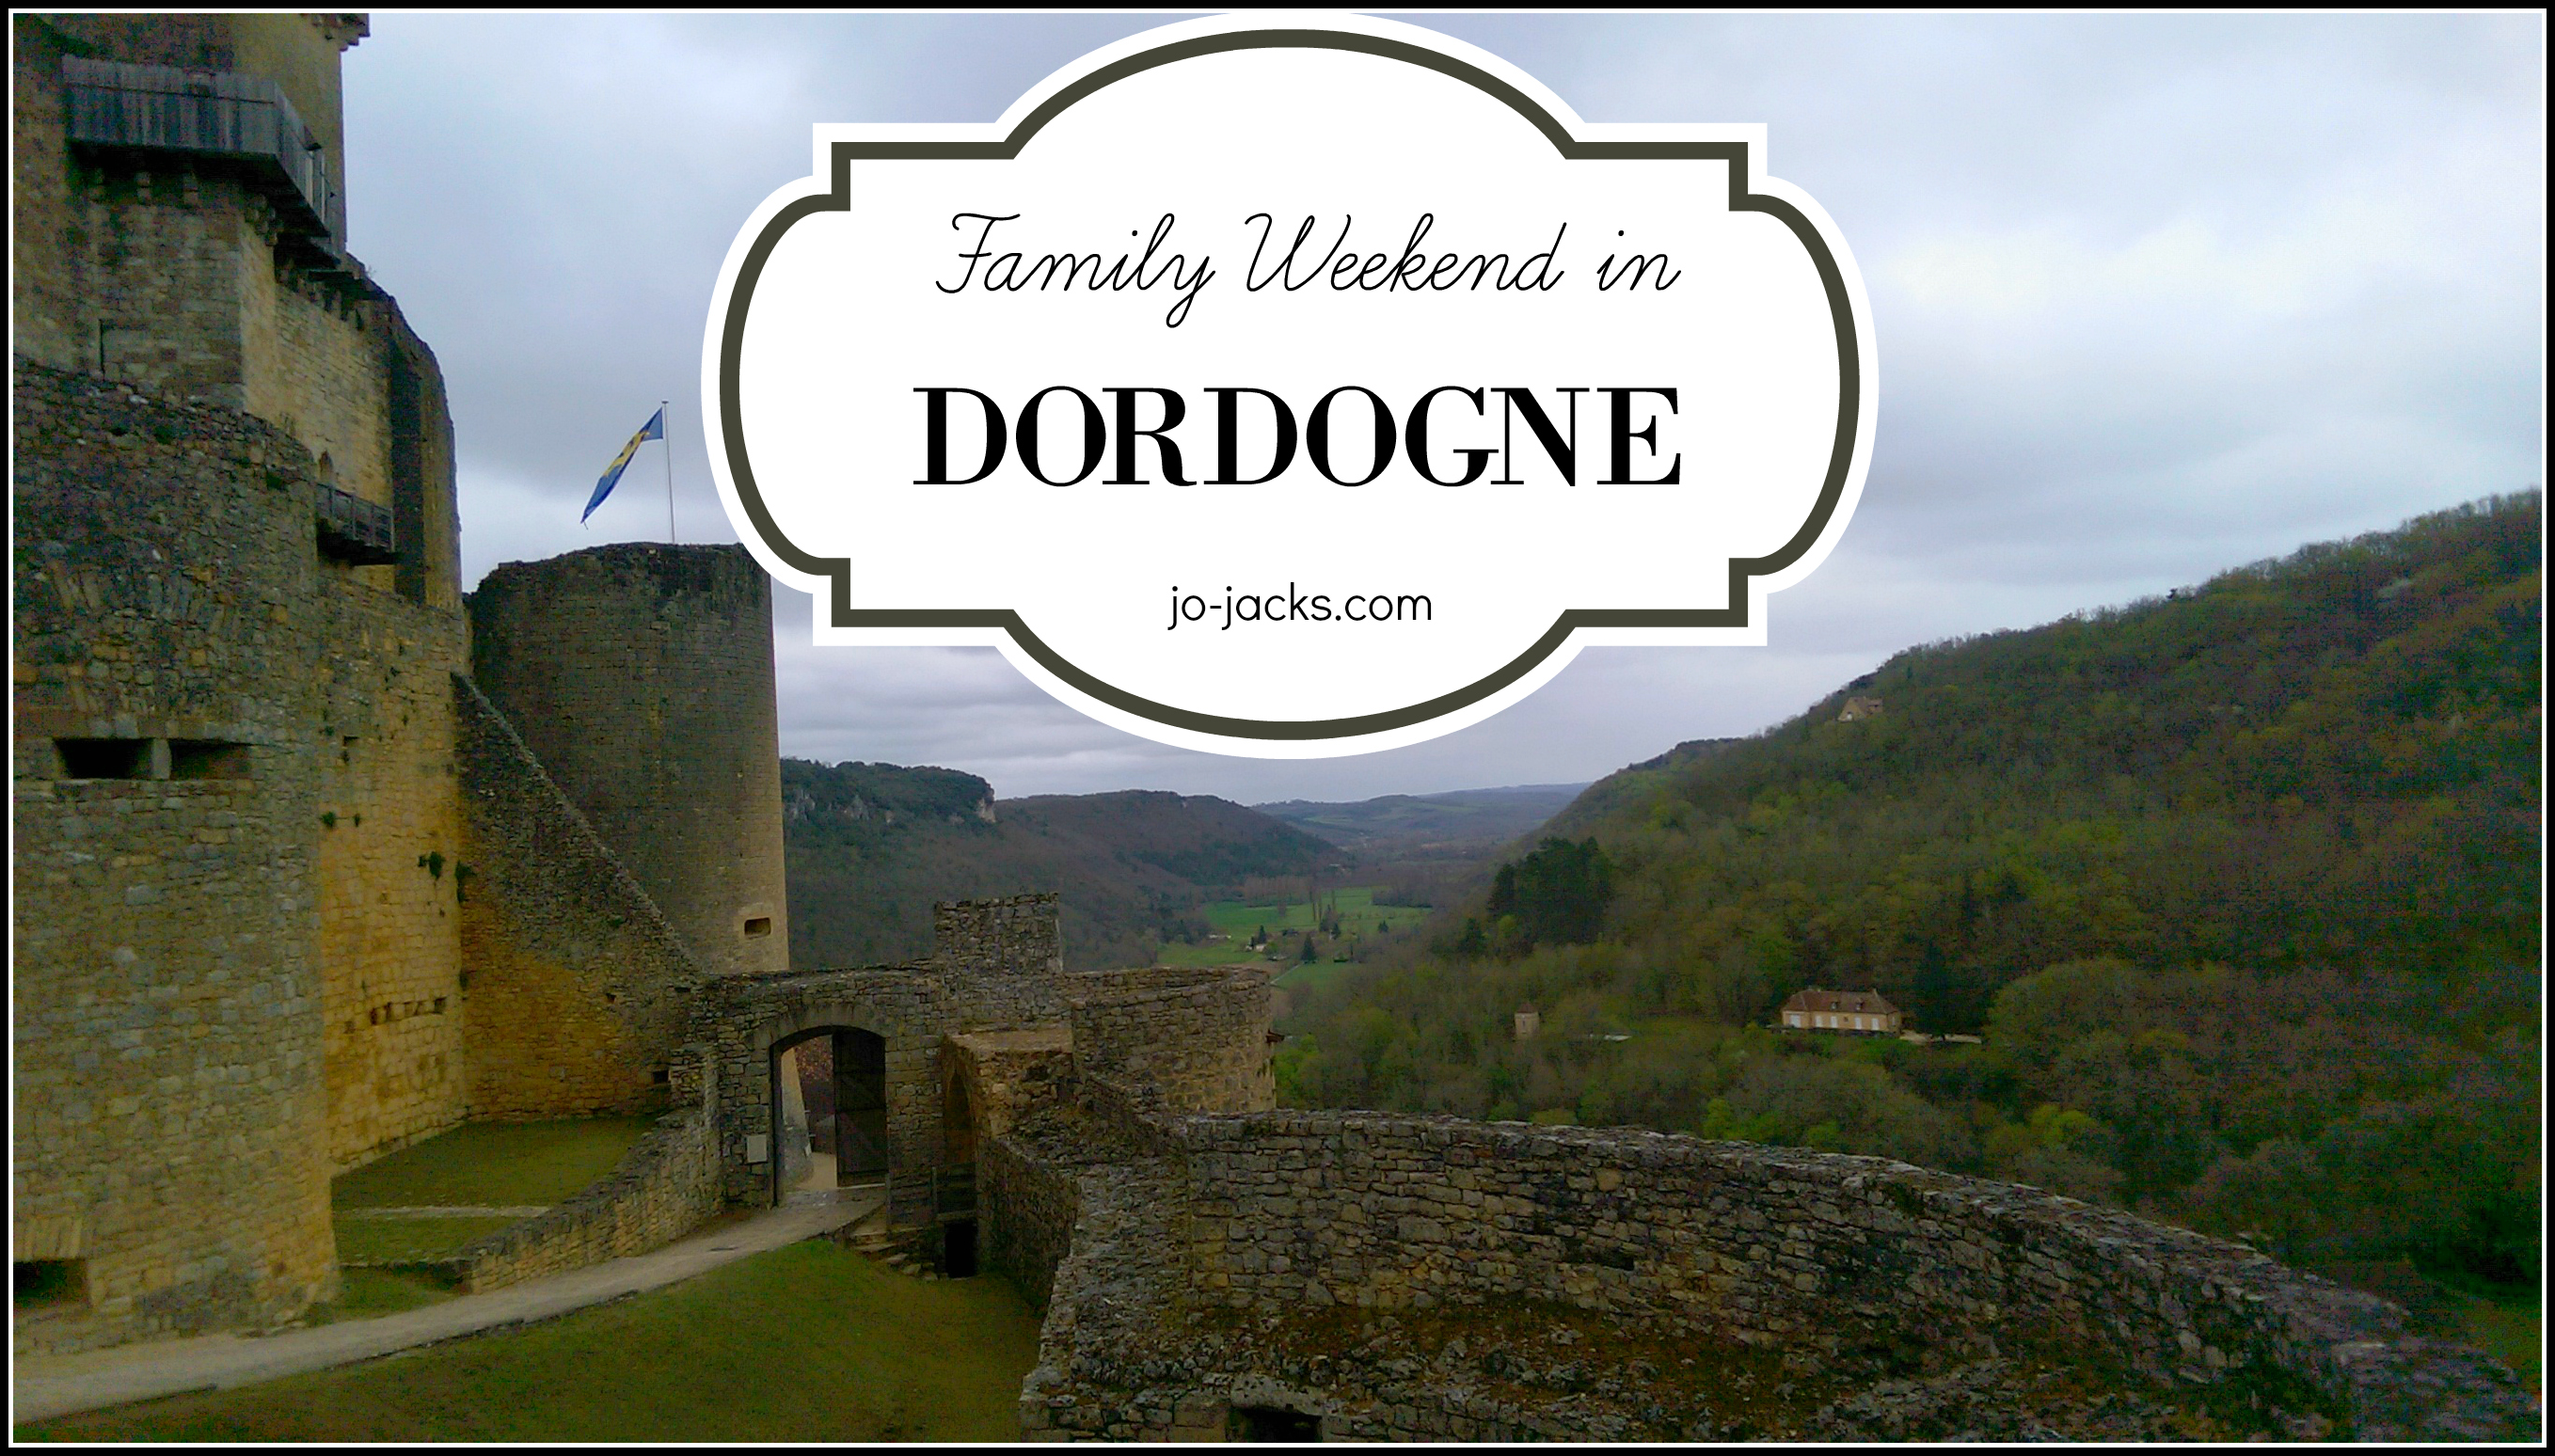 Dordogne Family Weekend